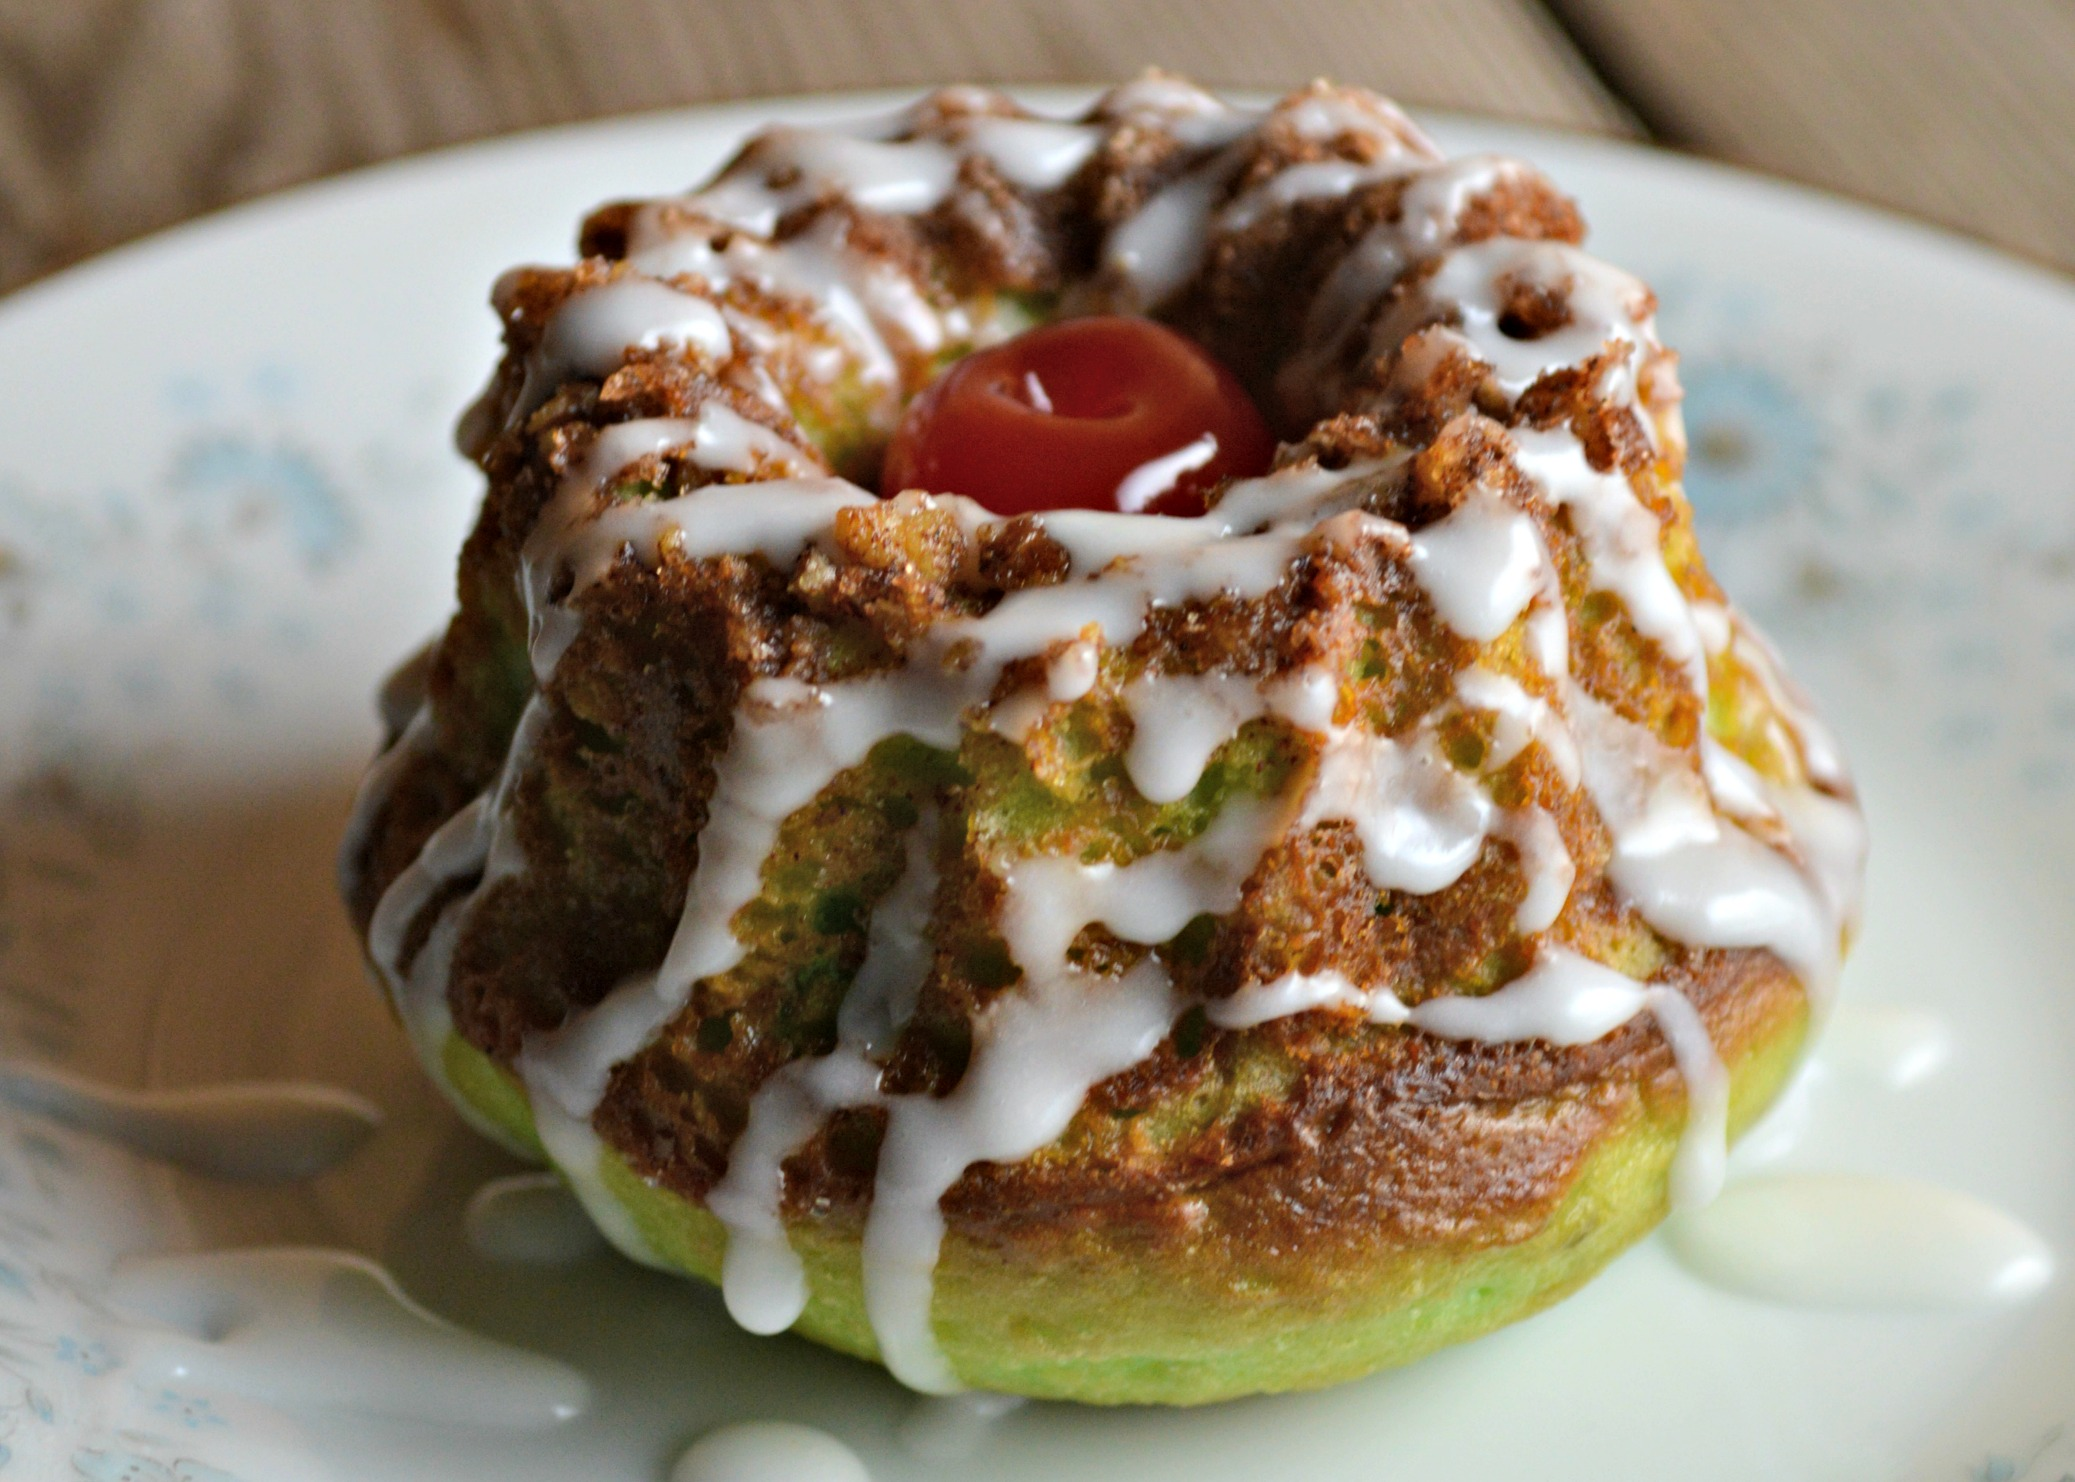 Mini Pistachio Coffee Cakes